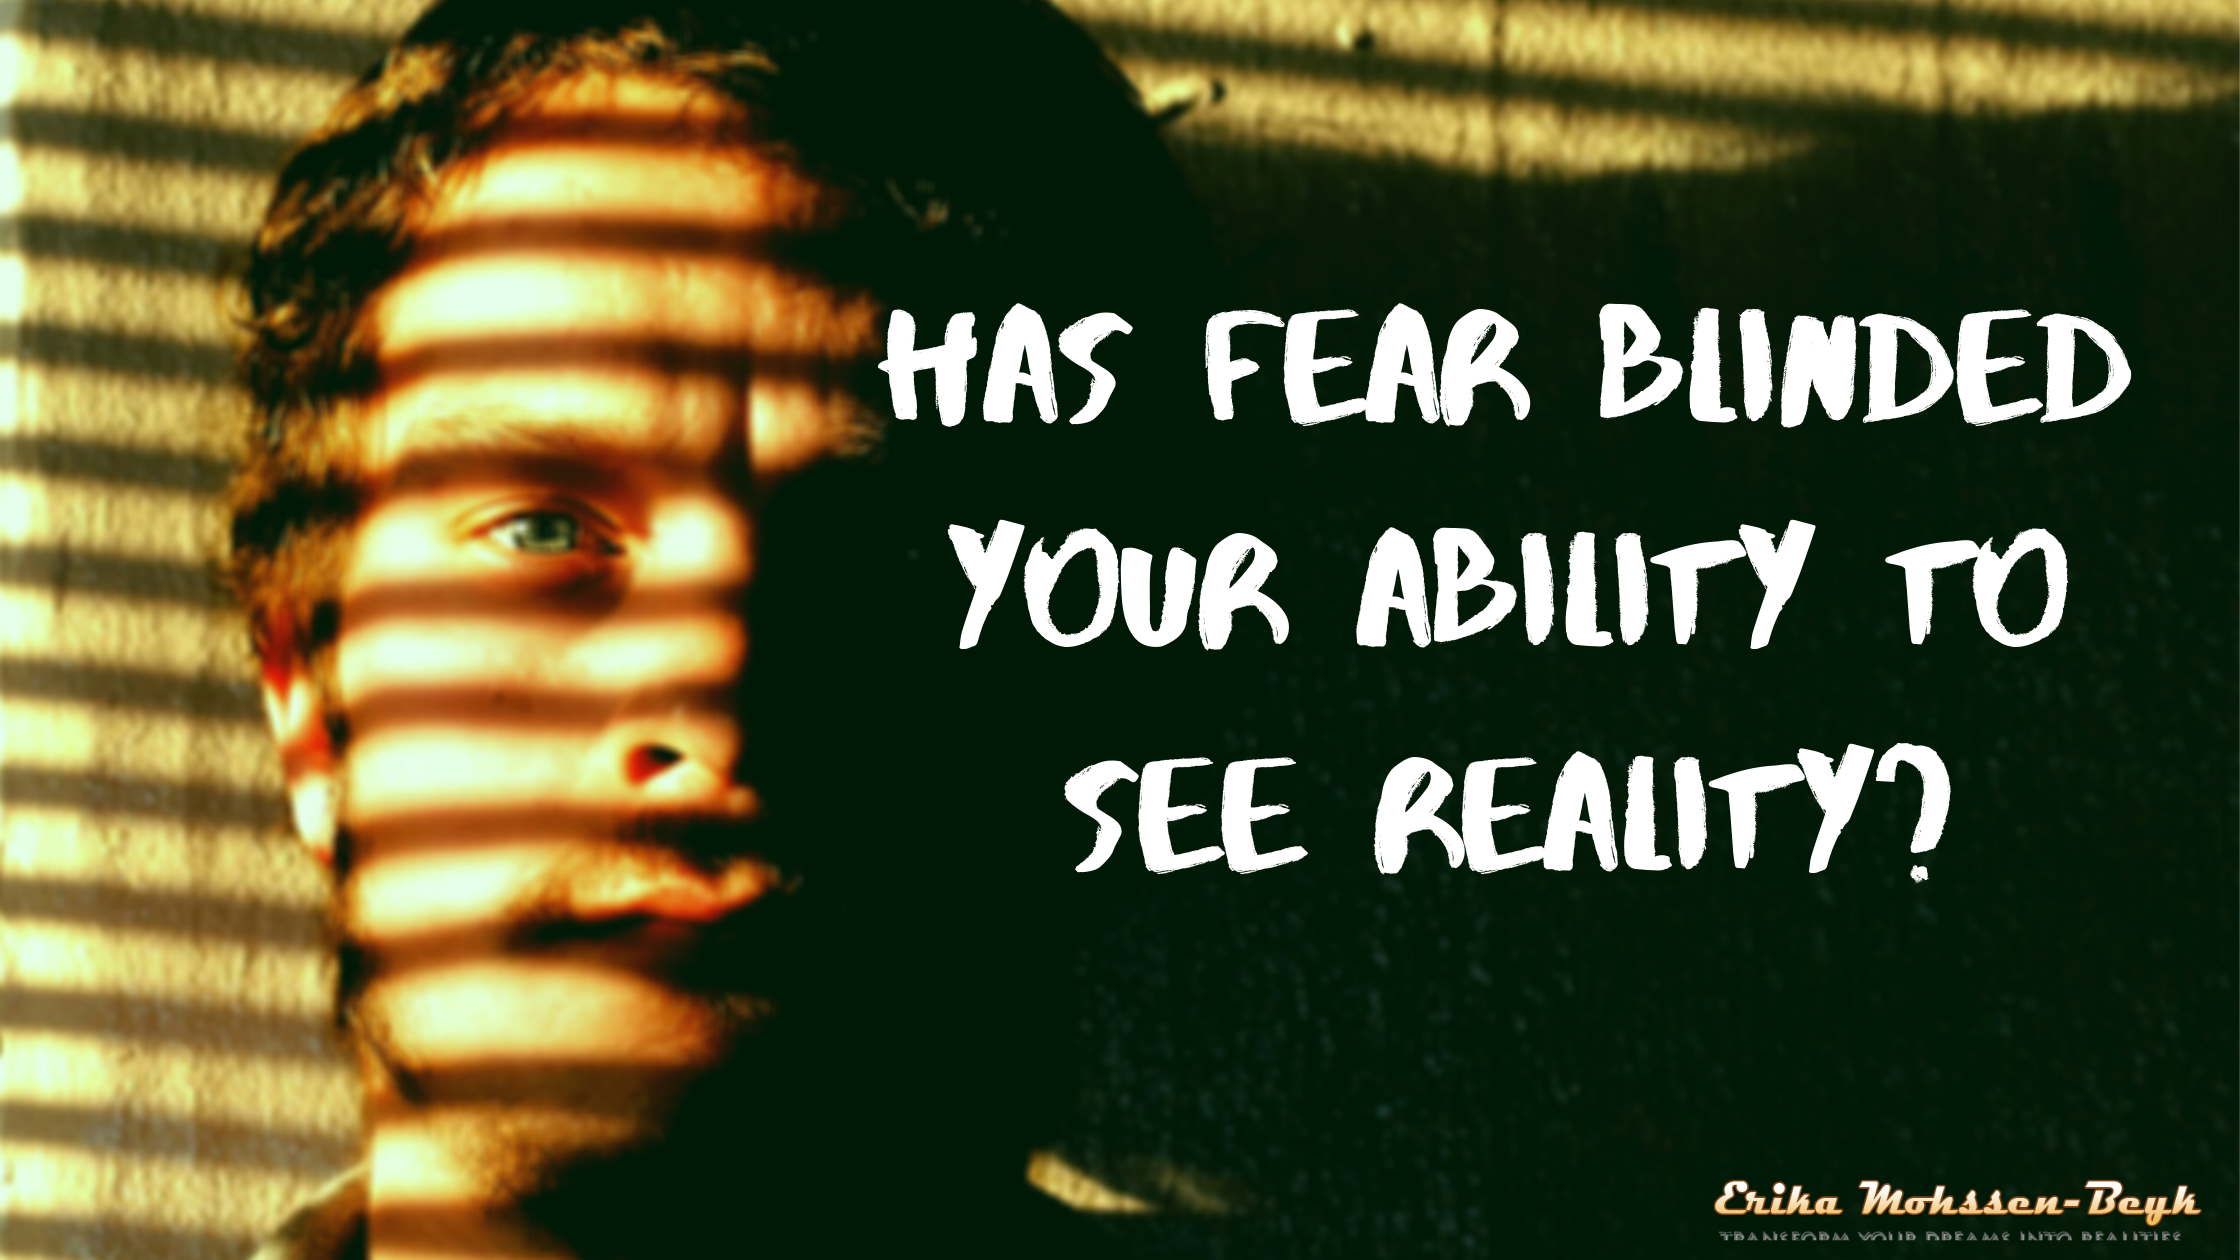 Has Fear Blinded Your Ability To See Reality?